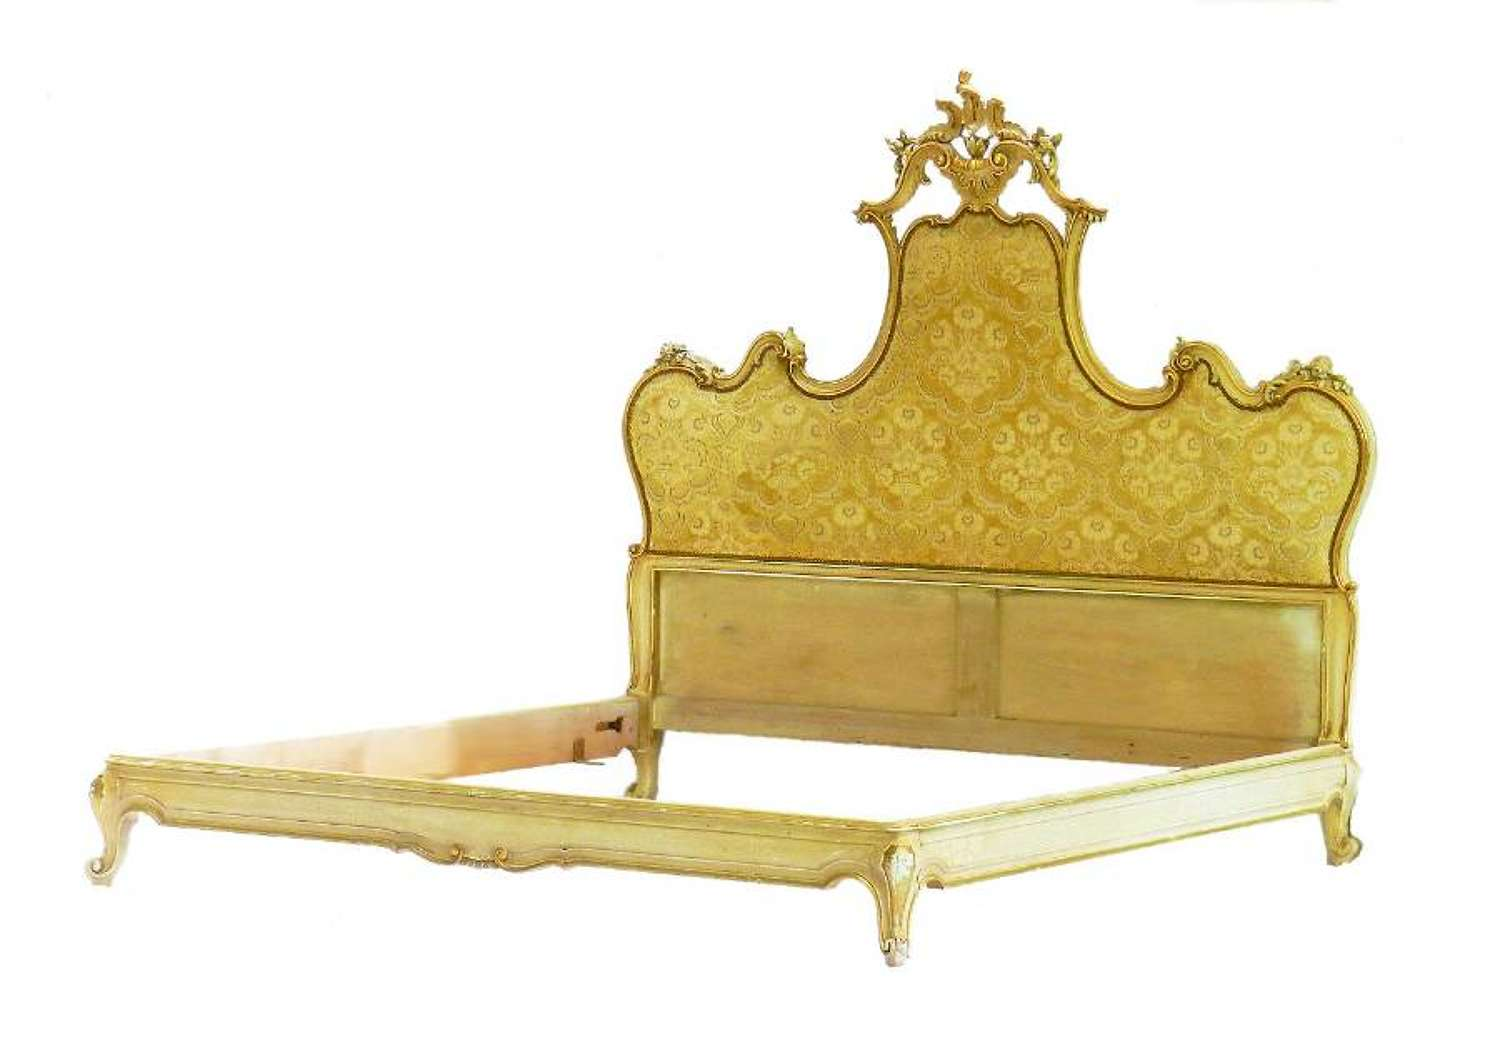 Italian Bed to Recover or Headboard Louis Revival UK Super King Carved Venetian